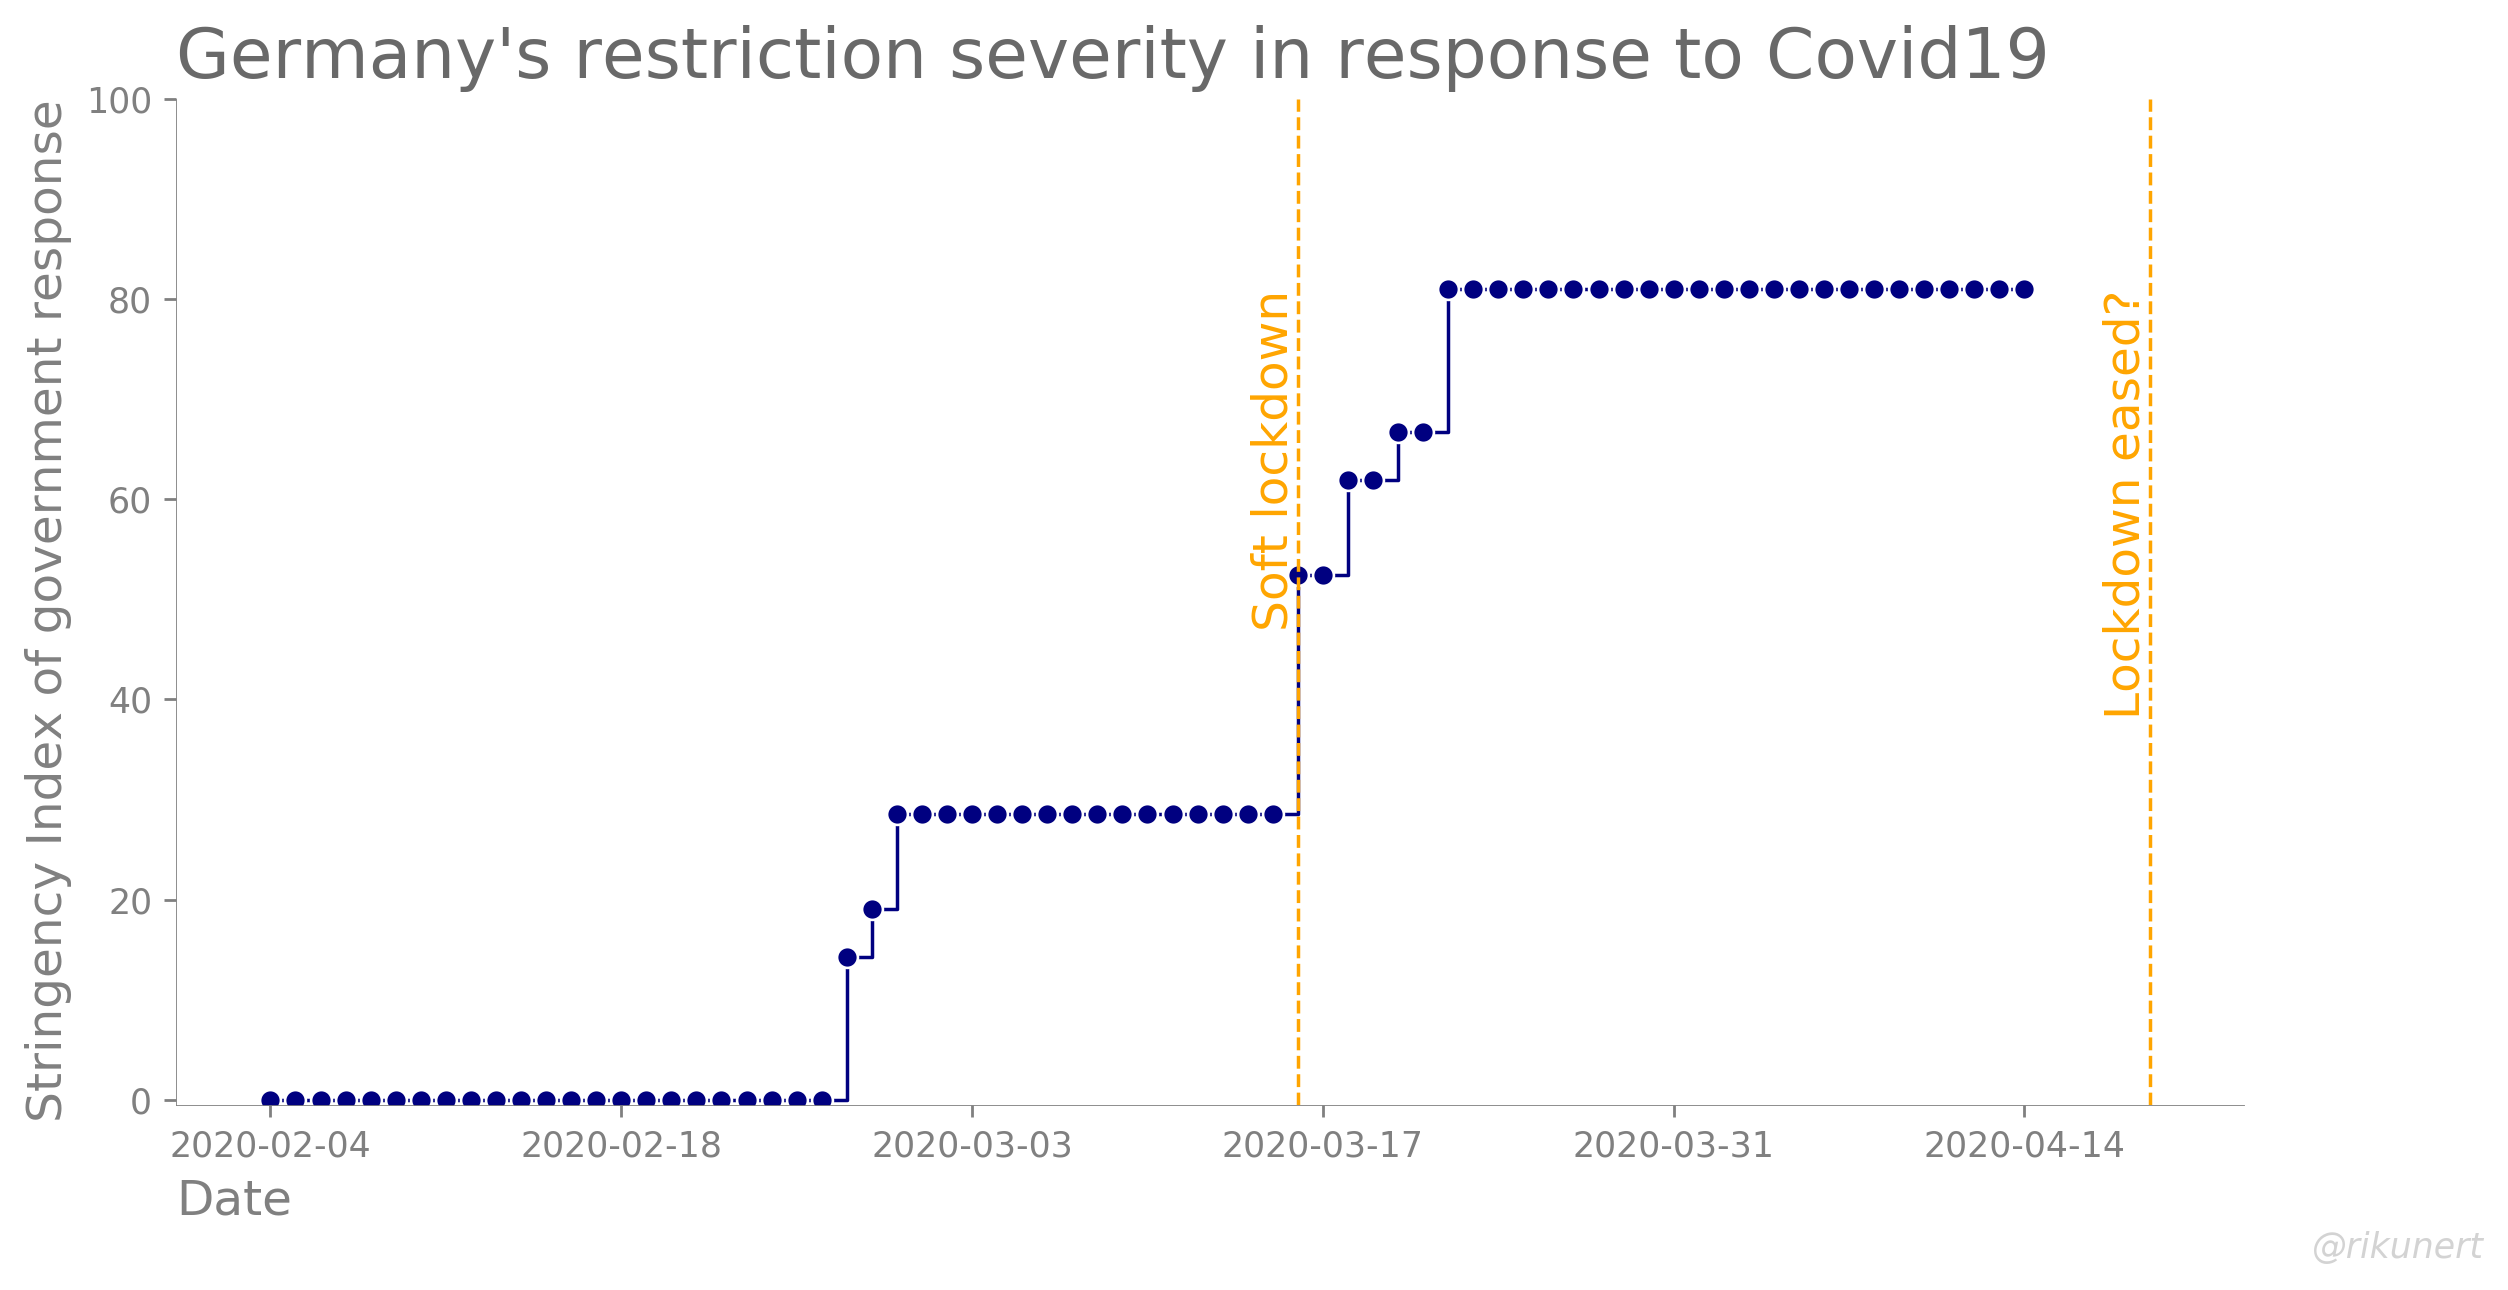 Development of Germany's Stringency Index quantifying the policy response to Covid-19